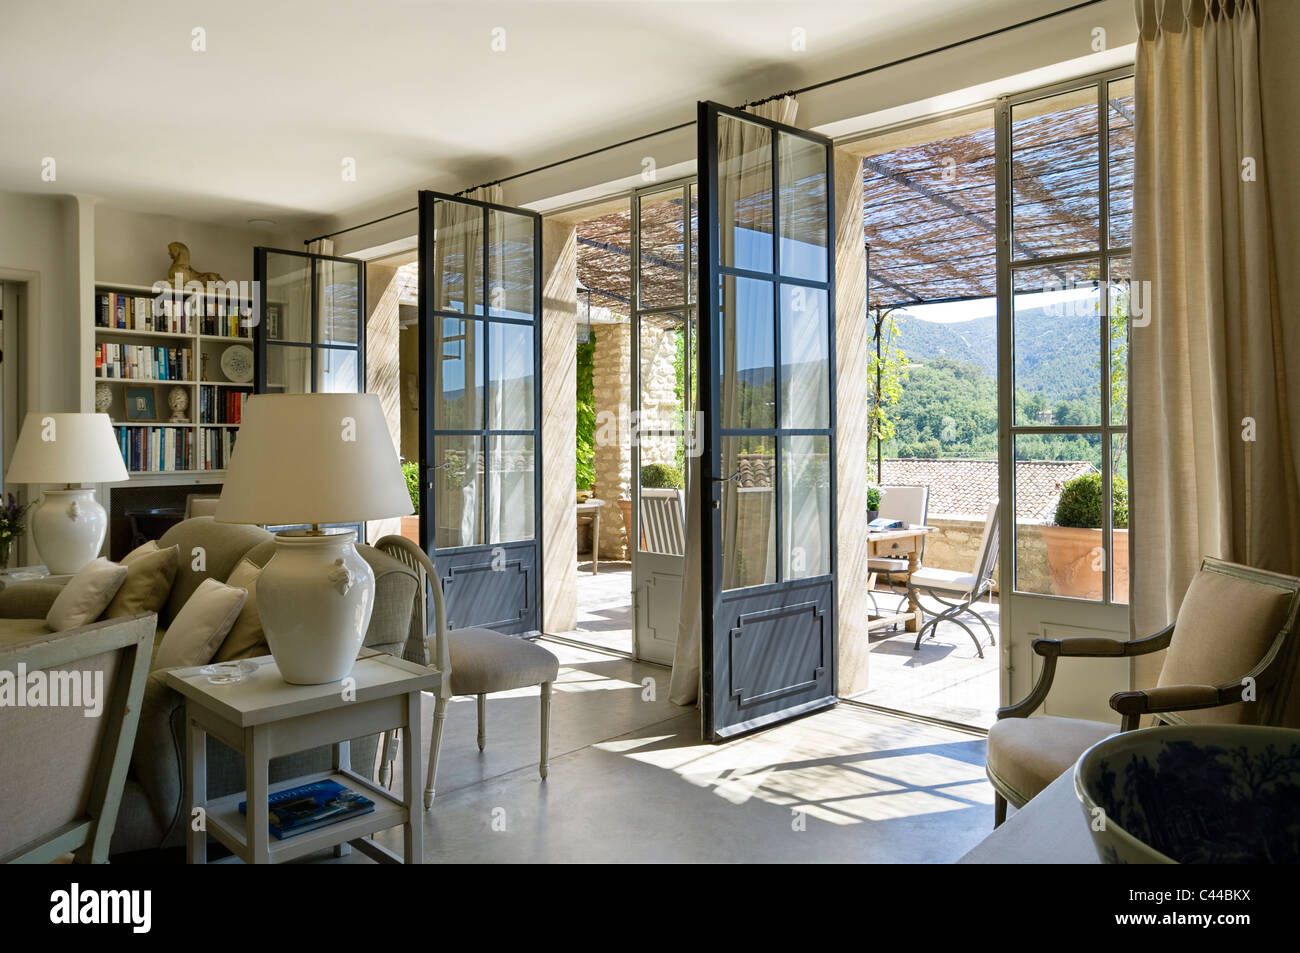 Spacious Living Room With Three Open French Windows